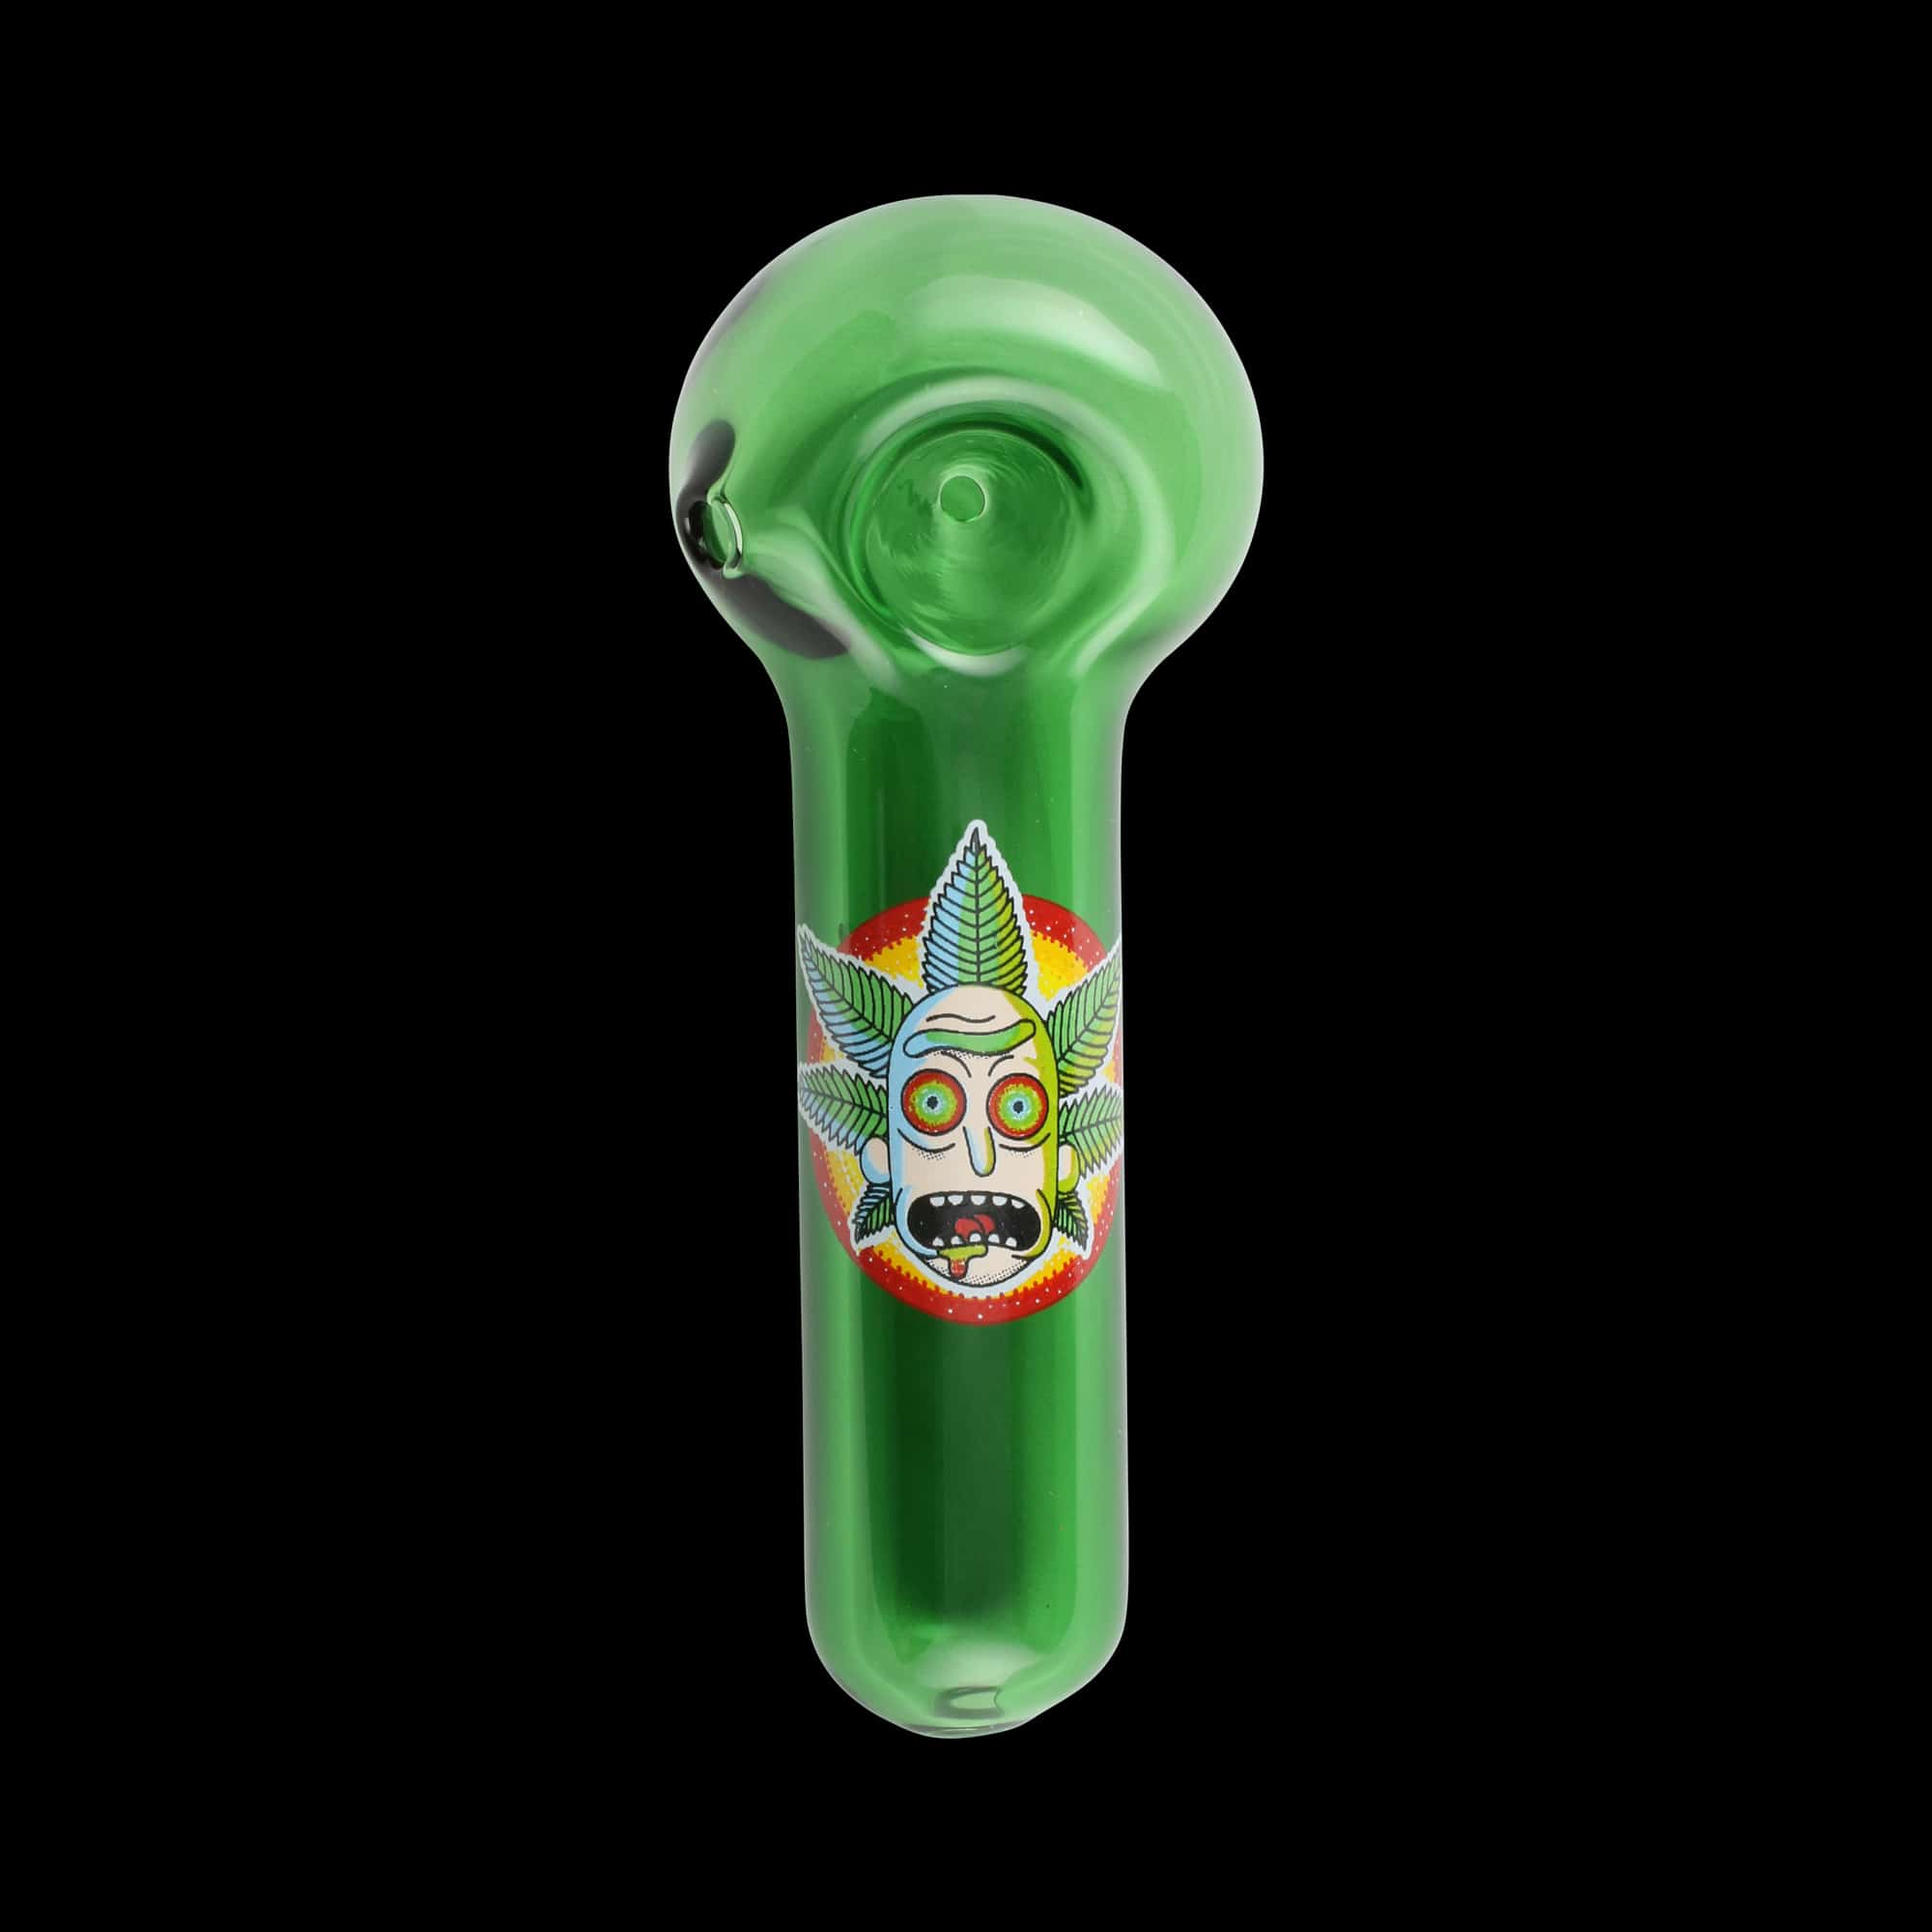 """Chameleon Glass Canna Crown Rick """"Rick and Morty"""" Glass Pipe - Green"""